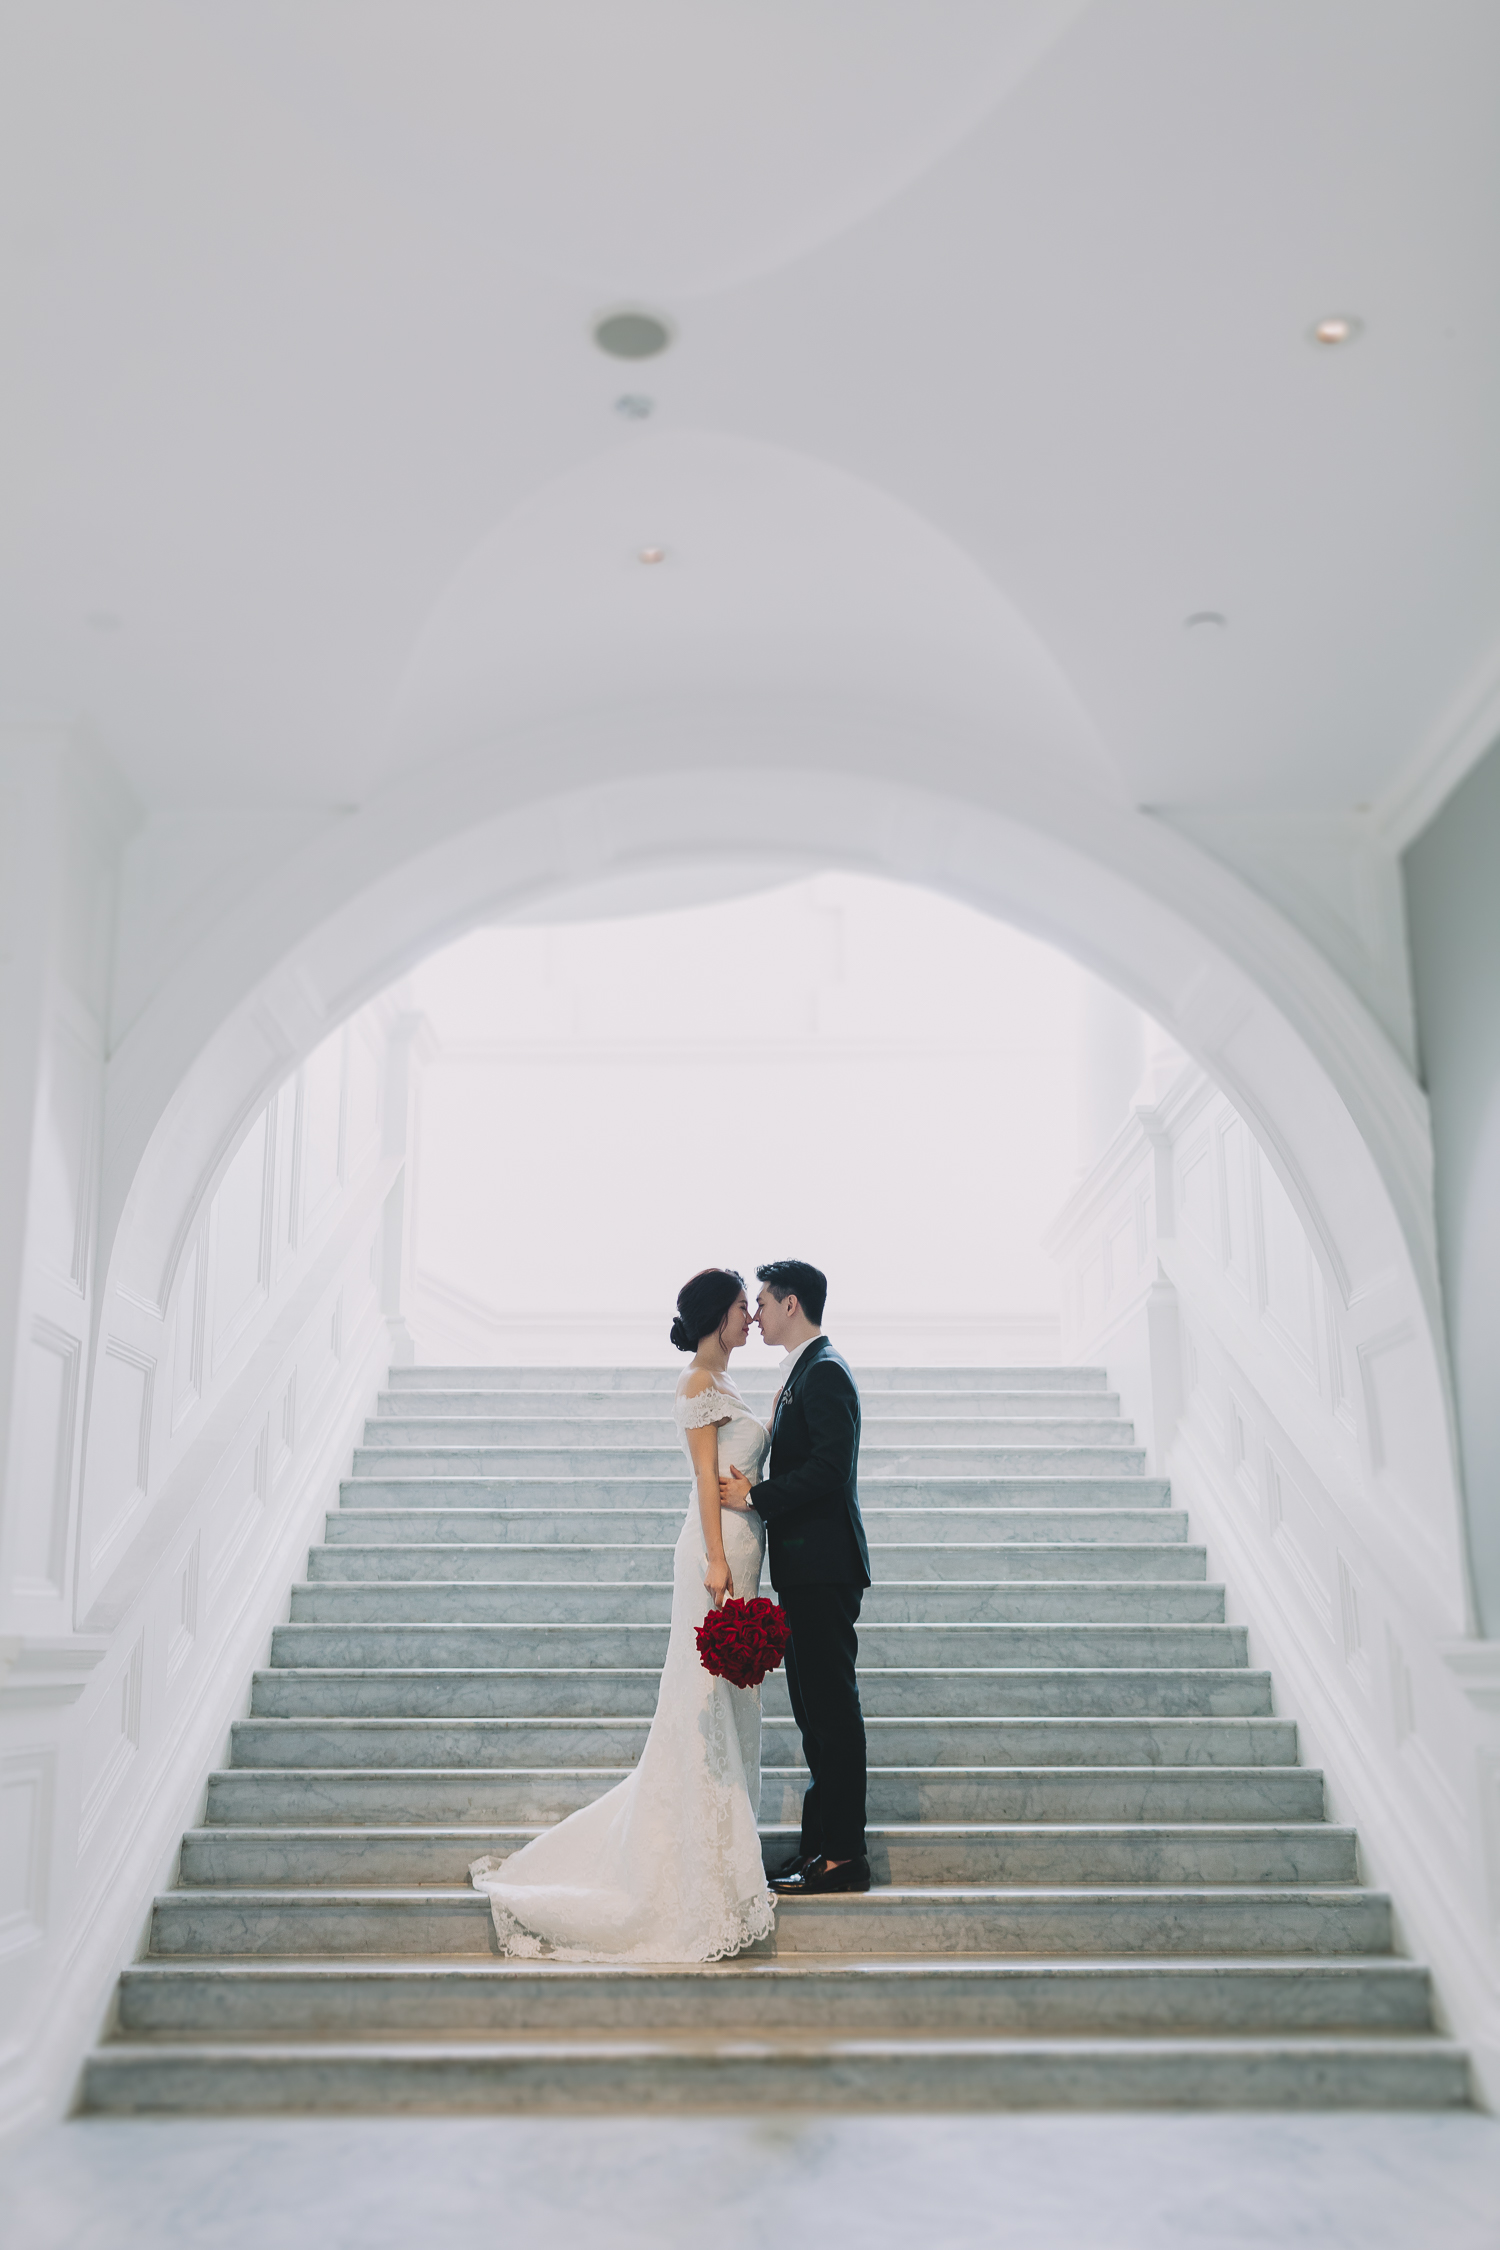 Singapore+Pre+Wedding+Photographer+Jeremiah+Christina-0005.jpg